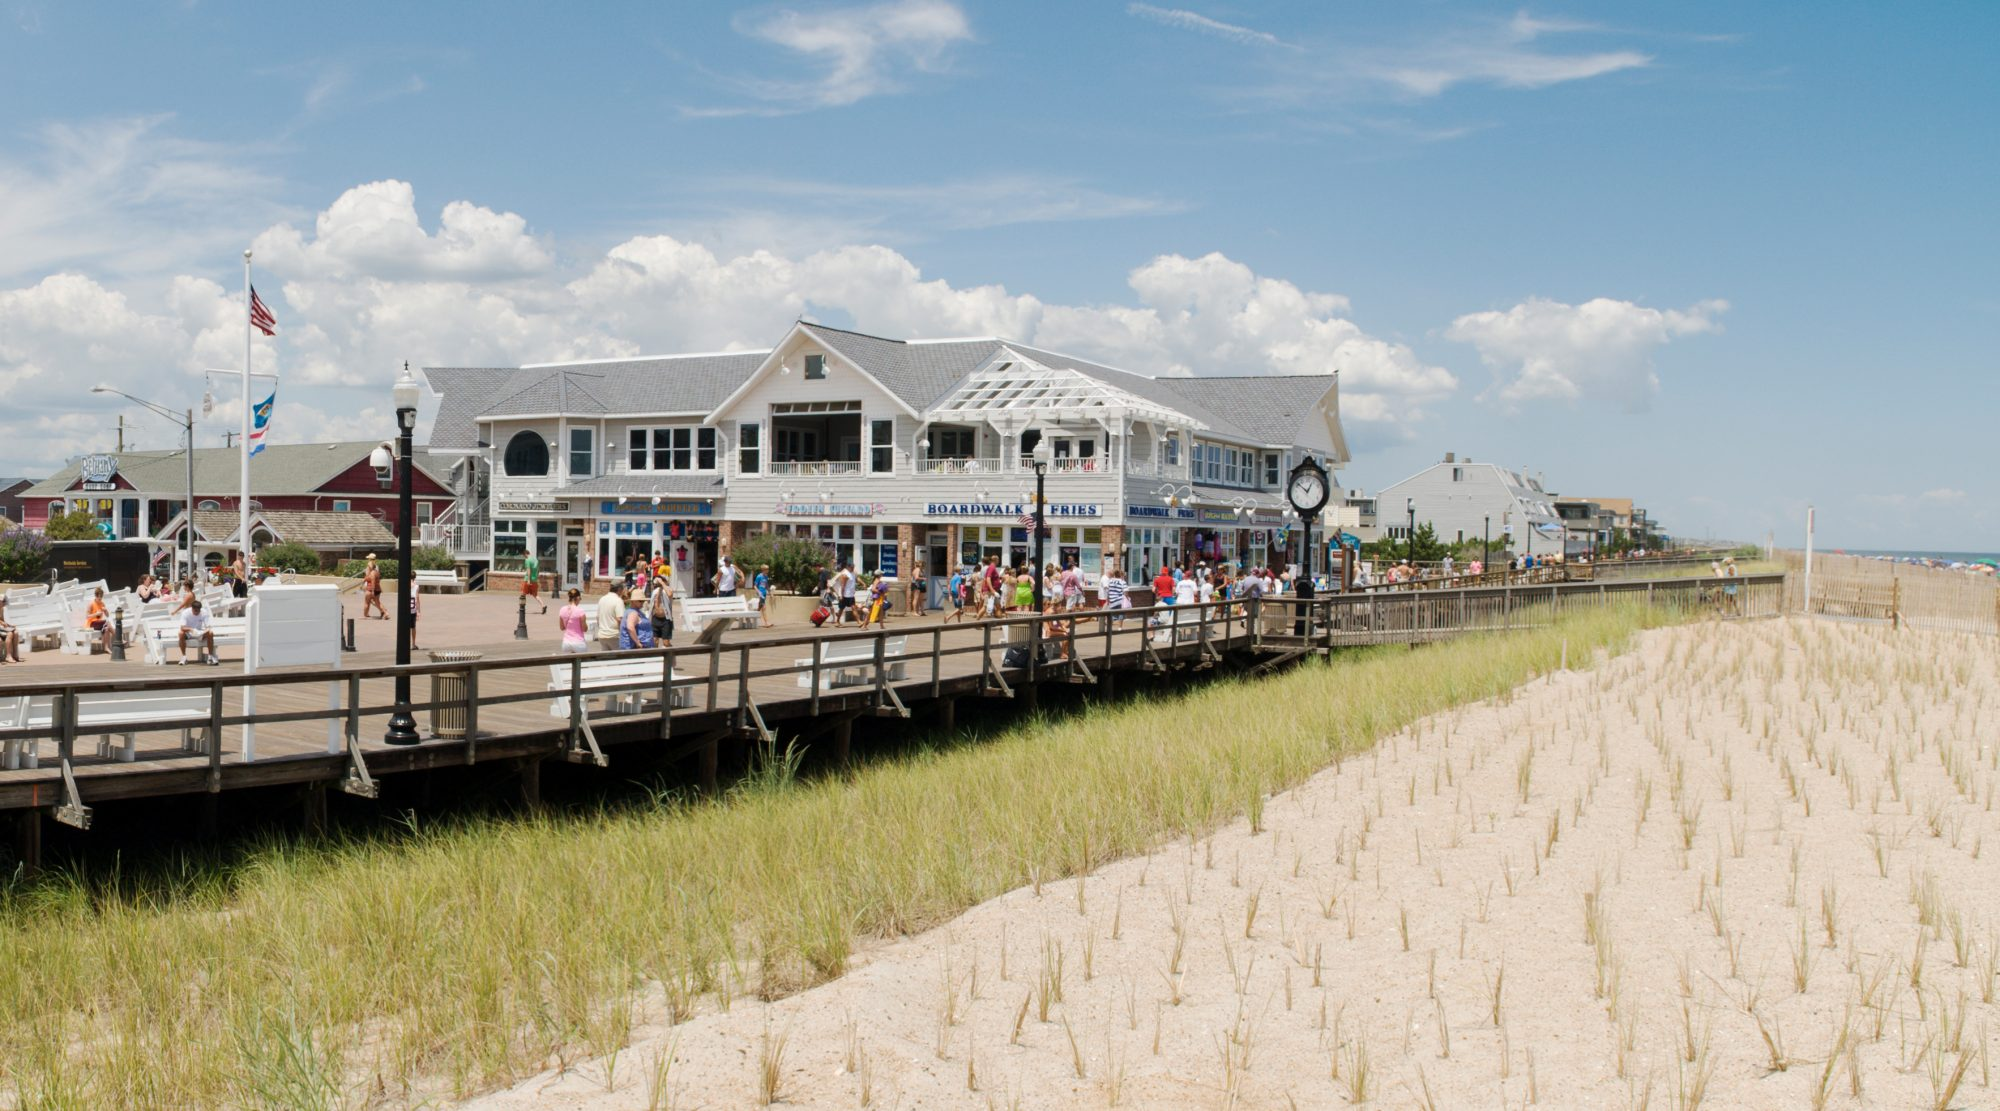 With its nostalgic, pedestrian-only boardwalk and mile-long strand right on the Atlantic that's cleaned mechanically three times a week, this family-friendly town is a real postcard of Delaware shoreline delight.